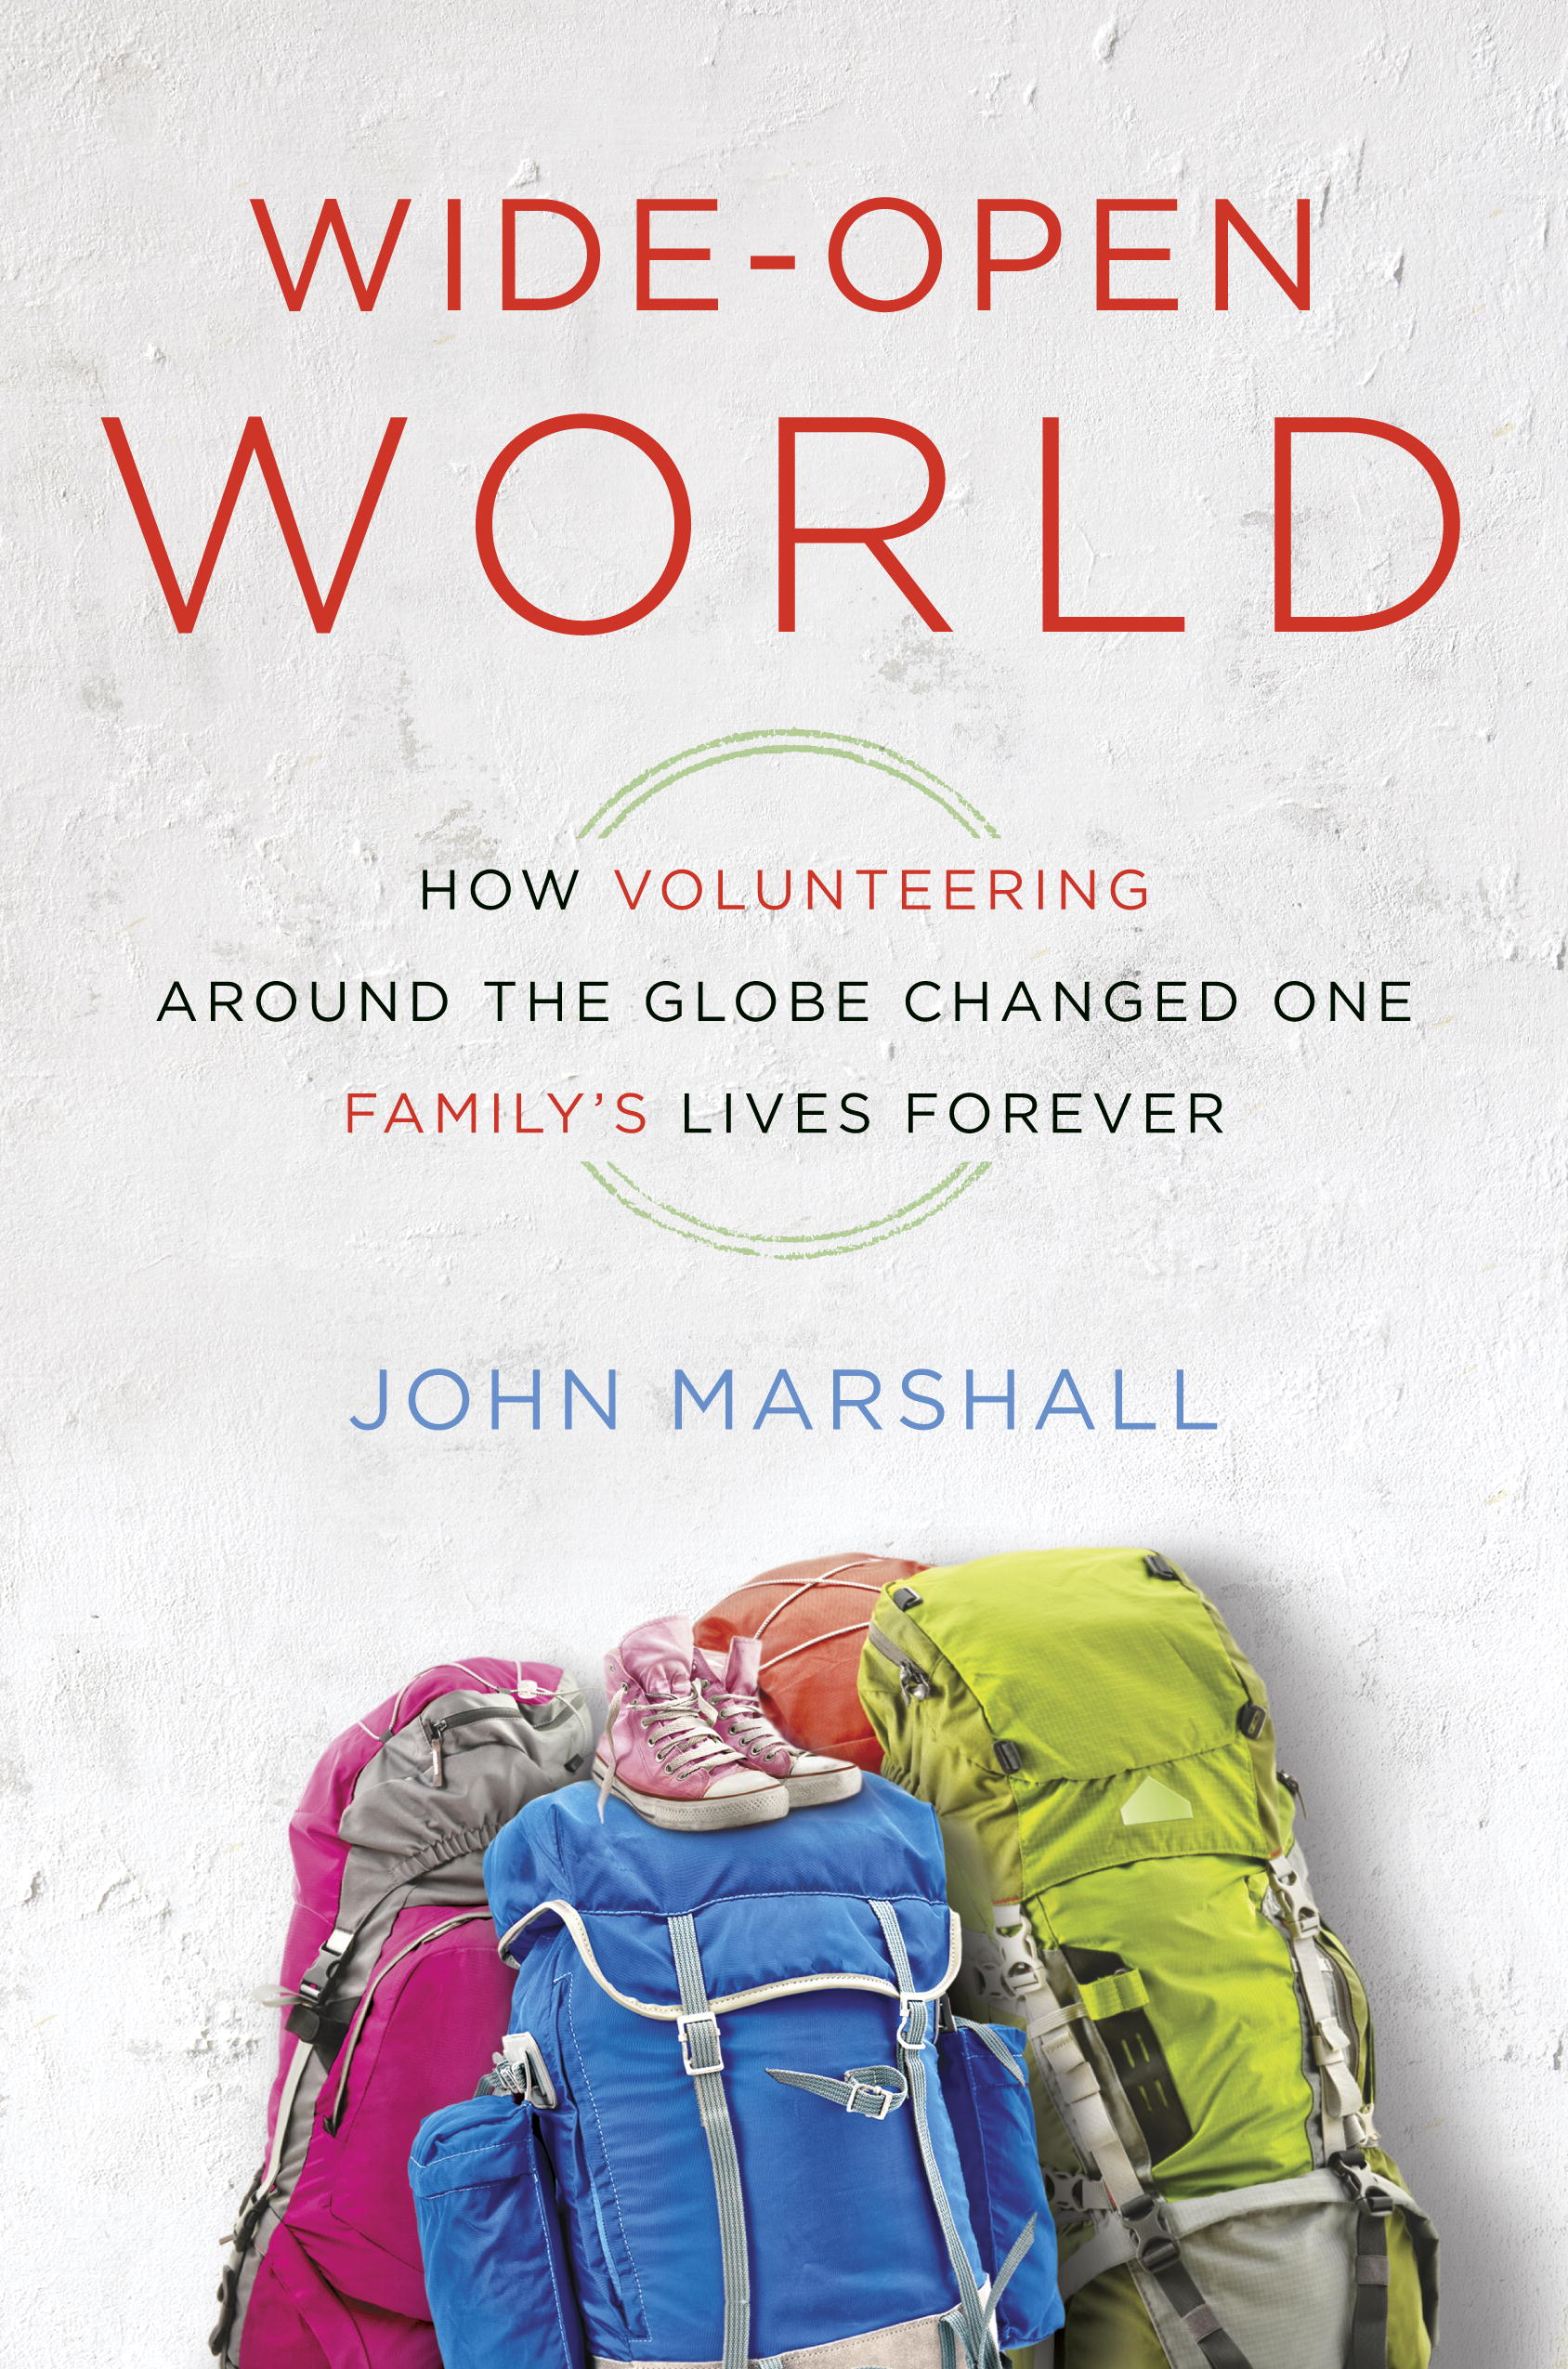 WIDE-OPEN WORLD by John Marshall